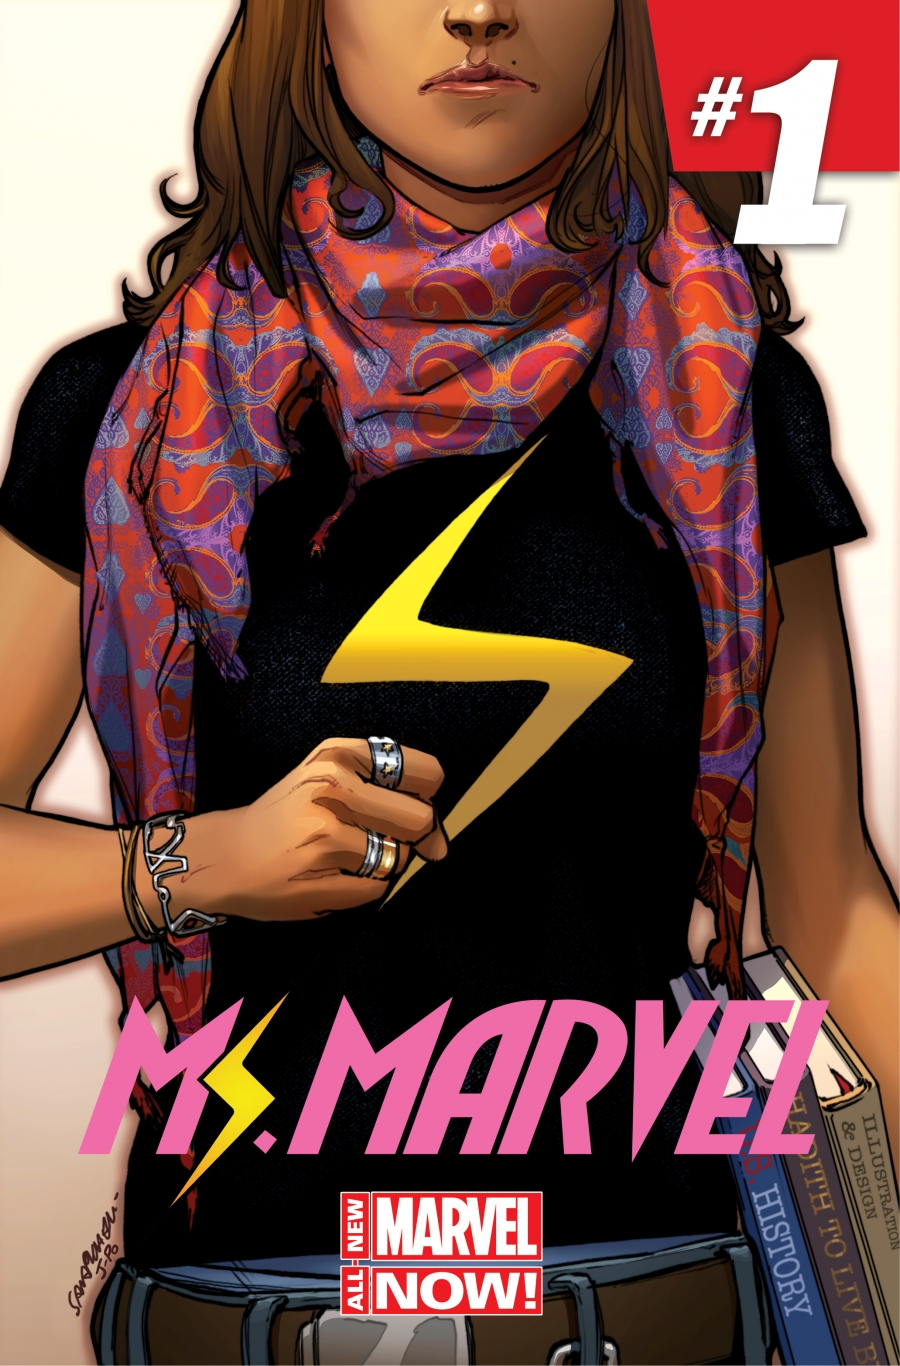 """Cover art for Marvel Comic's new """"Ms. Marvel"""" comic book series, featuring a 16-year-old New Jersey girl named Kamala Khan."""